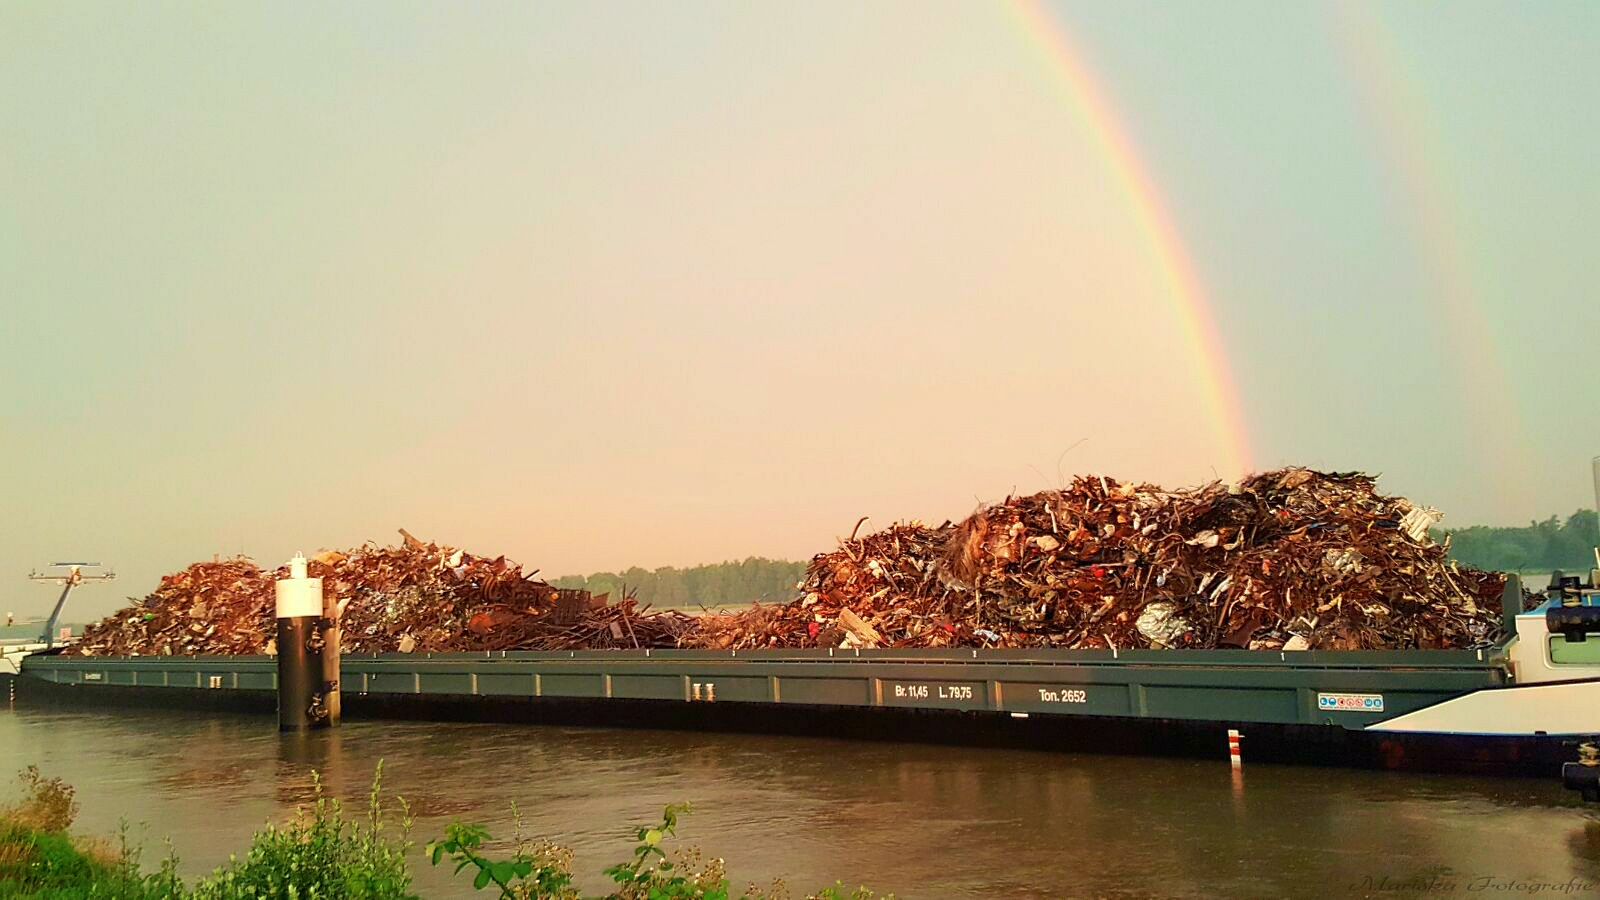 No pot of gold under the rainbow,but a ship full of junk! by Chaynasa